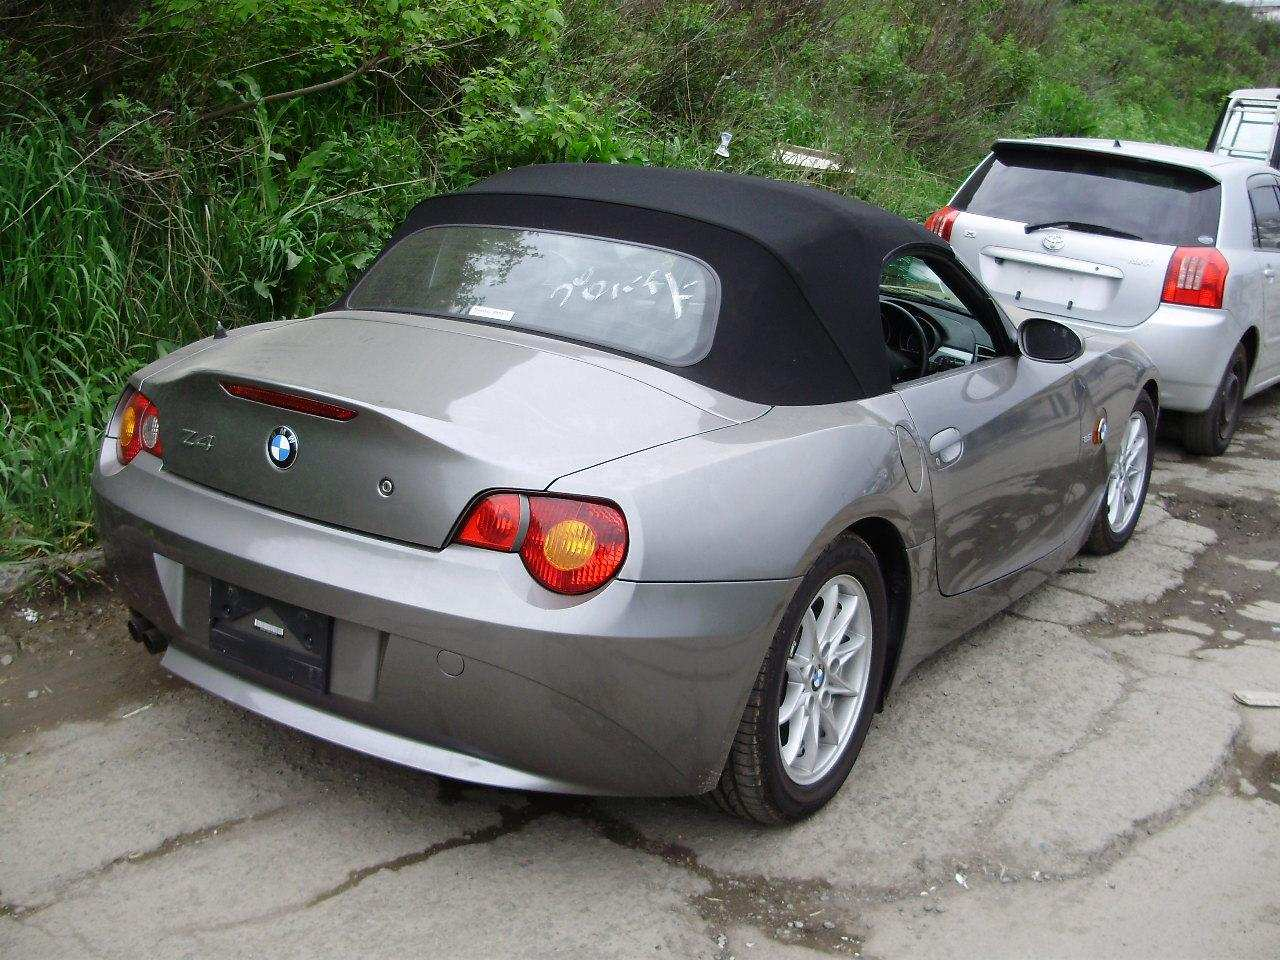 Used 2004 Bmw Z4 Photos 2500cc Gasoline Fr Or Rr